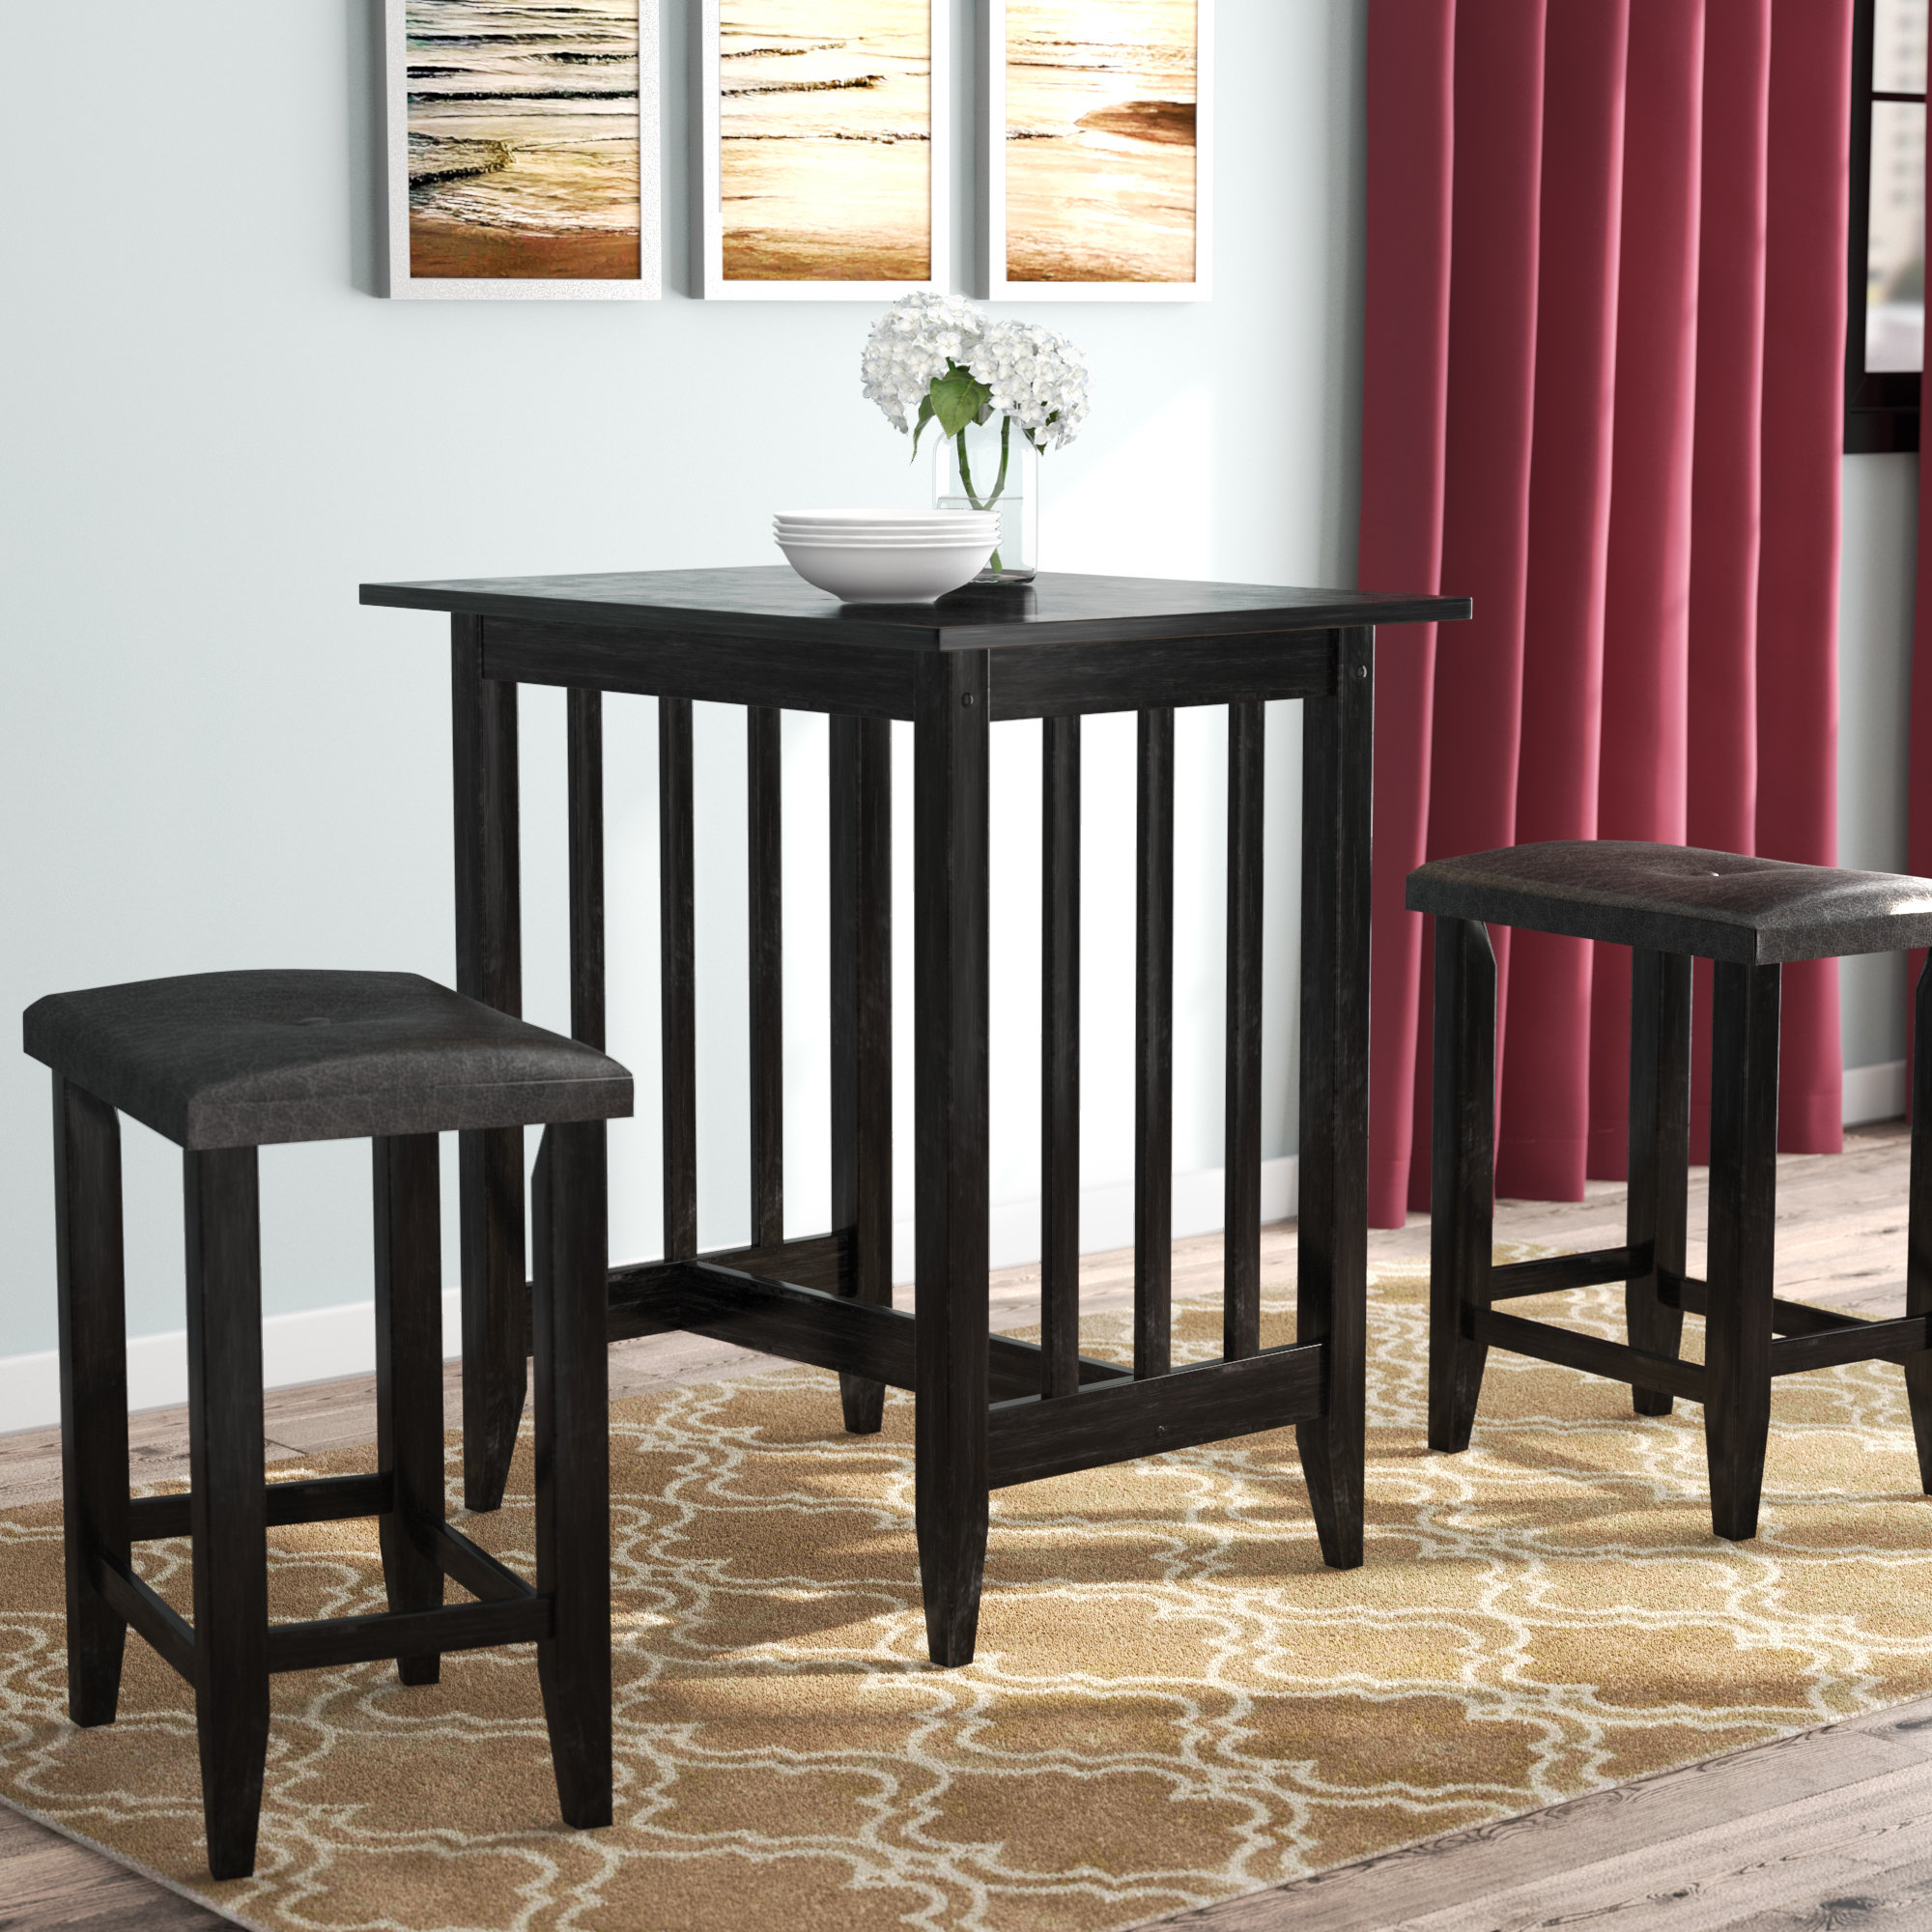 Hood Canal 3 Piece Dining Sets intended for Most Popular Andover Mills Richland 3 Piece Counter Height Pub Table Set